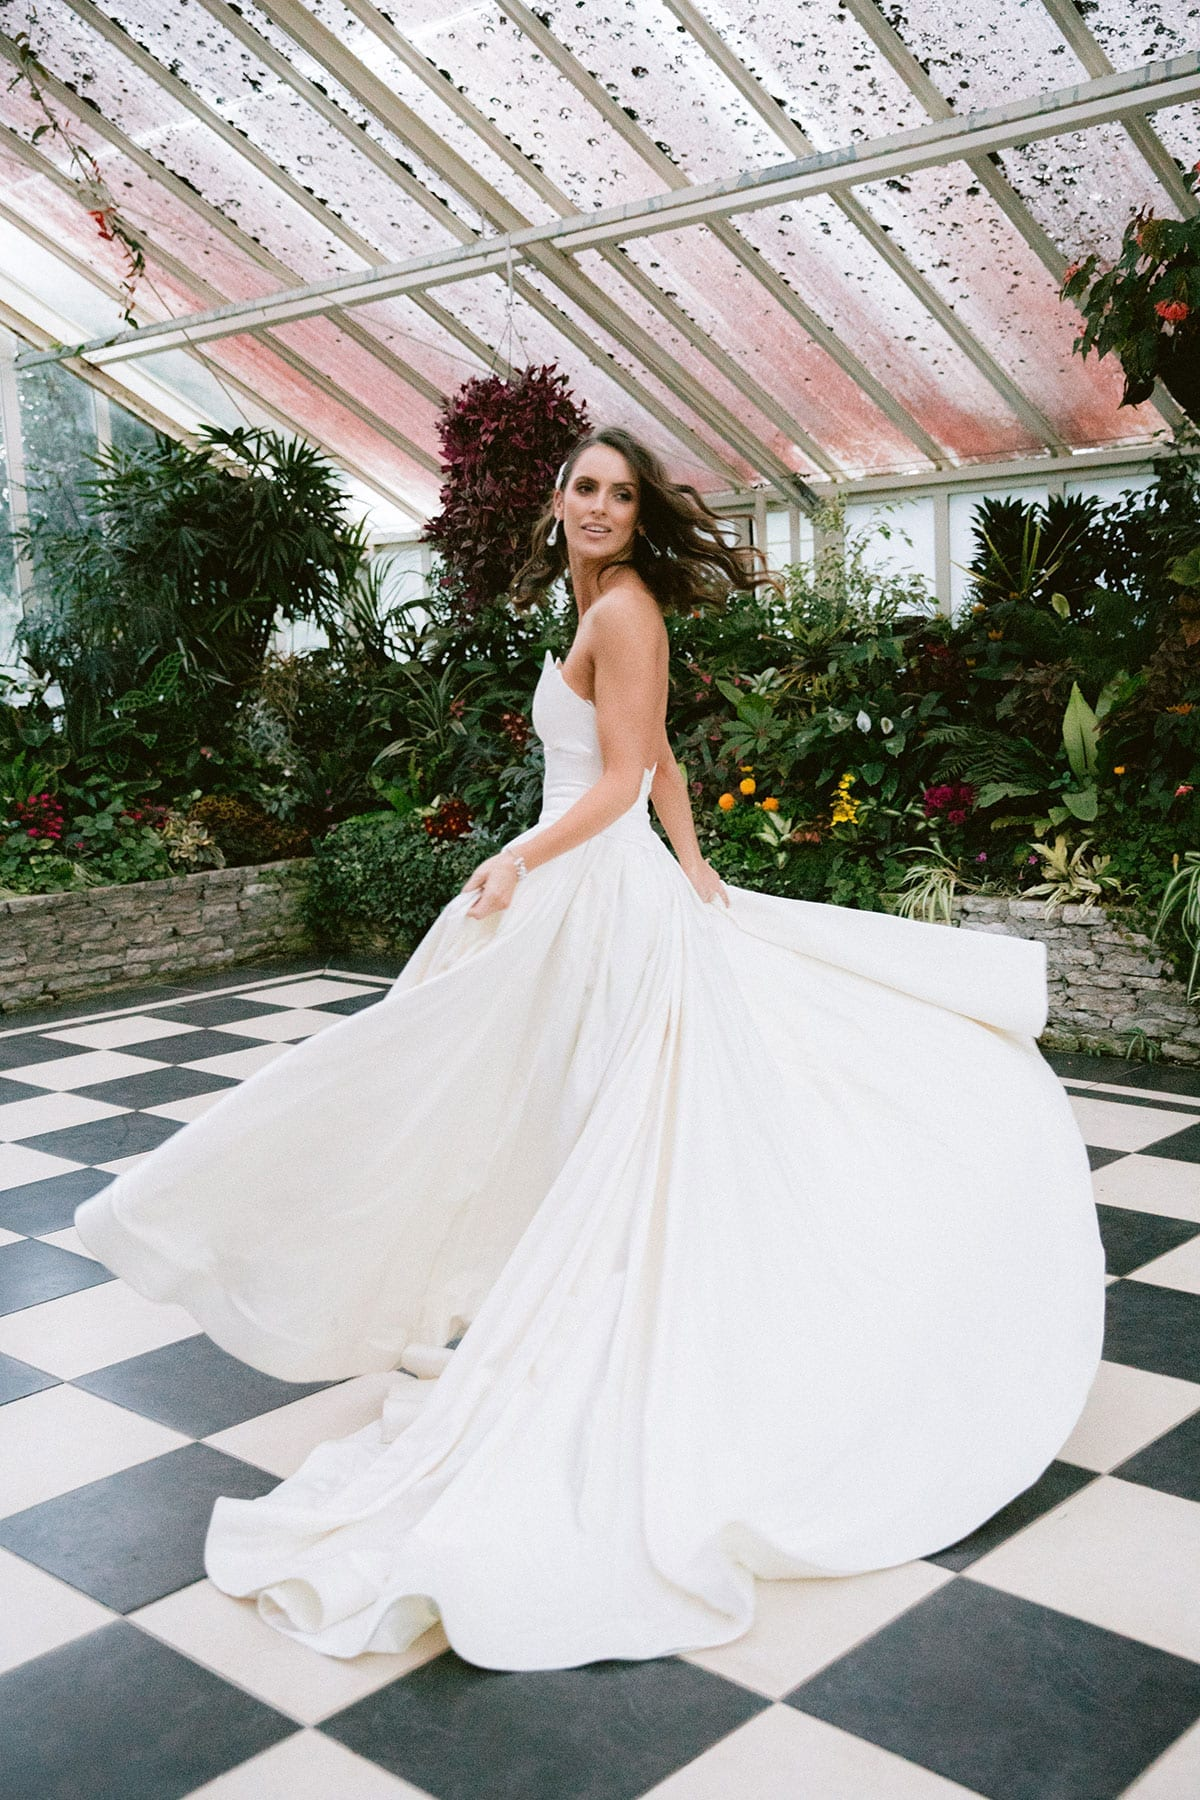 Model wearing Vinka Design Germaine Wedding Dress, a strapless dramatic wedding dress with split in a botanical garden greenhouse facing to the side dress flared